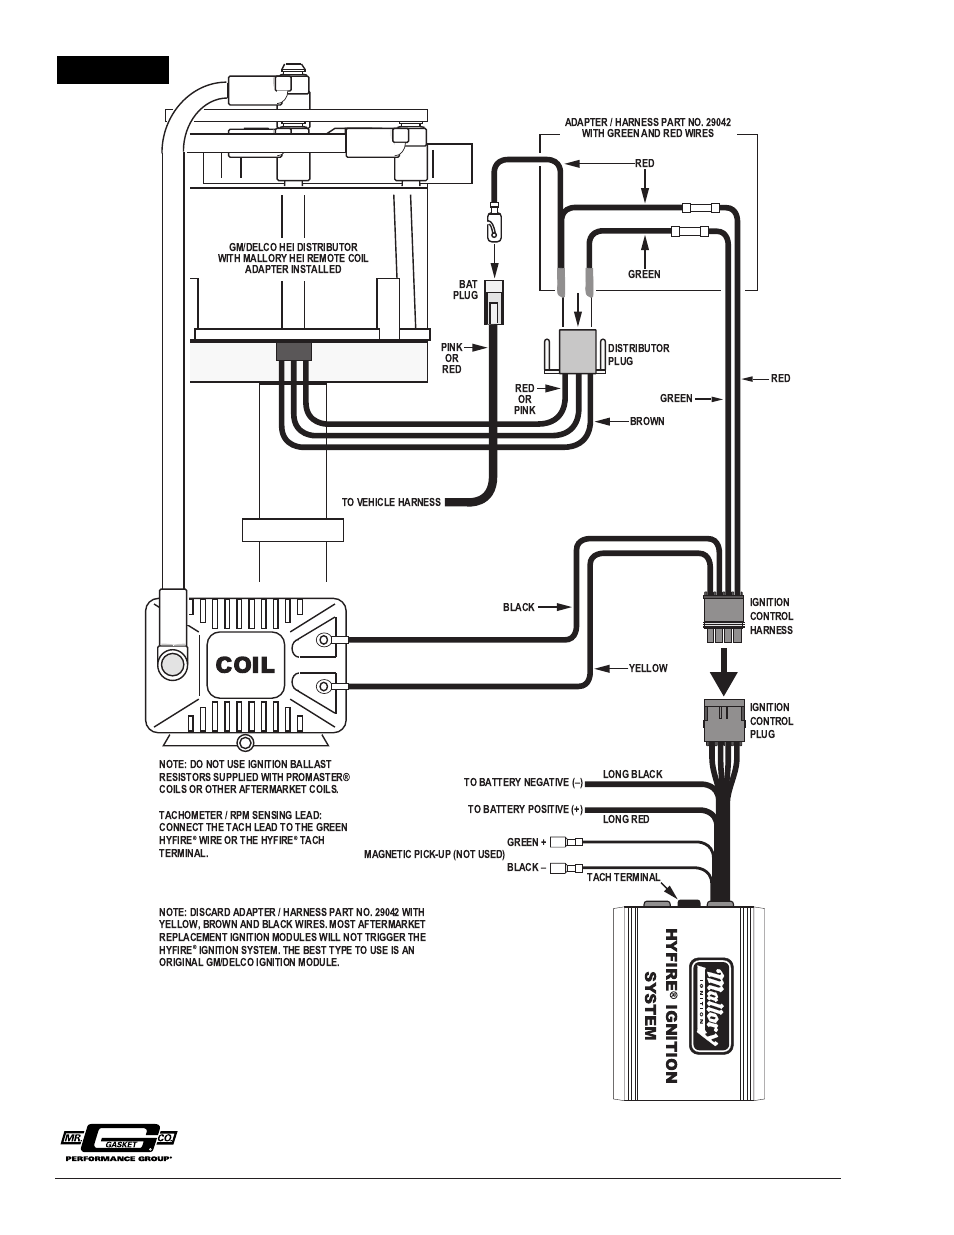 Accel Hei Super Coil Wiring Diagram: Fine Accel Hei Distributor Wiring  Diagram Photos - Electrical